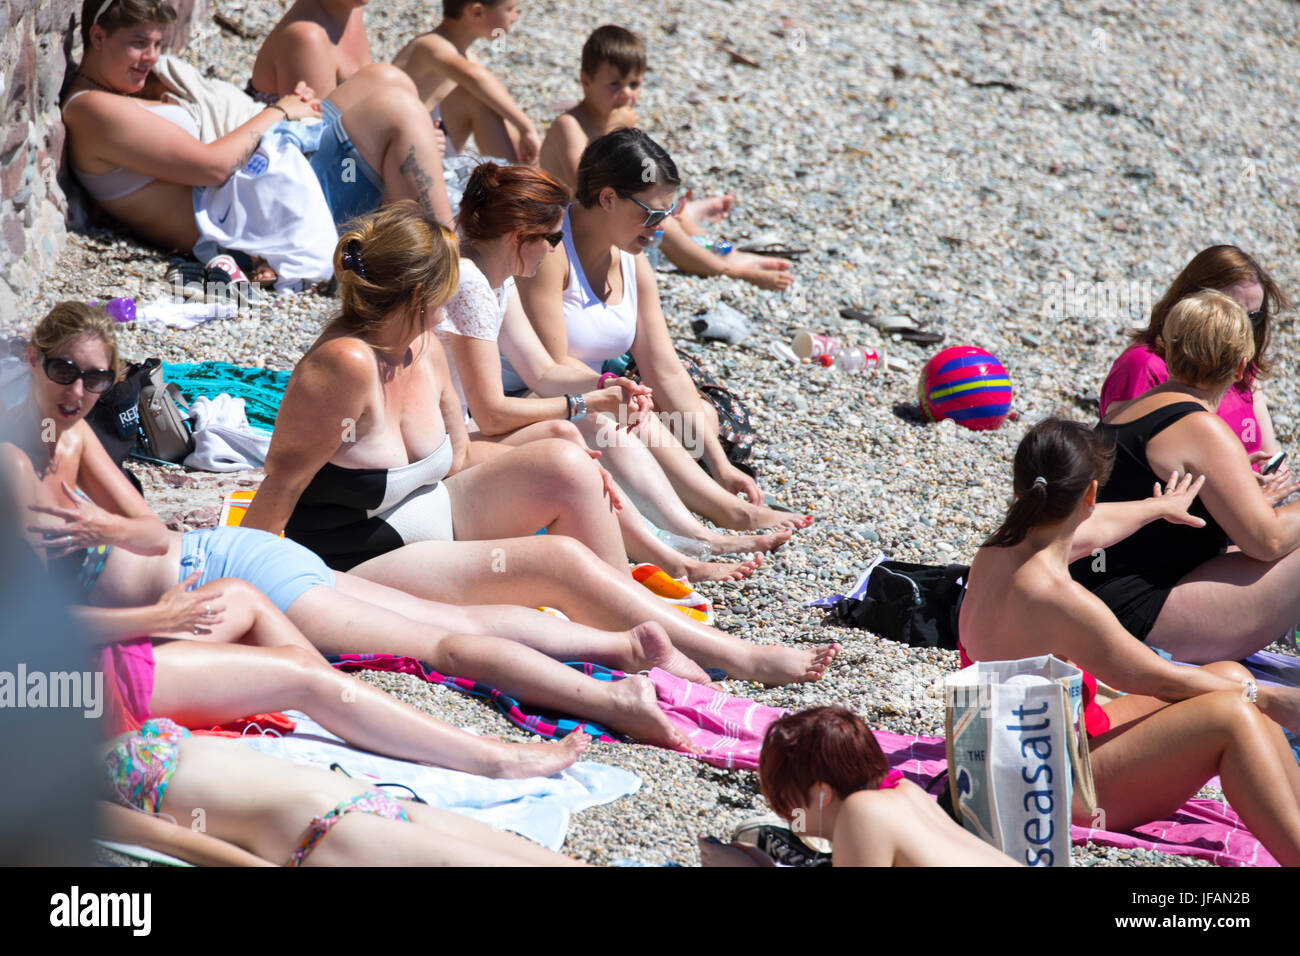 Sun bathers at the popular seaside village of Kingsand in Cornwall, England sunbathing on the pebble beach at the - Stock Image